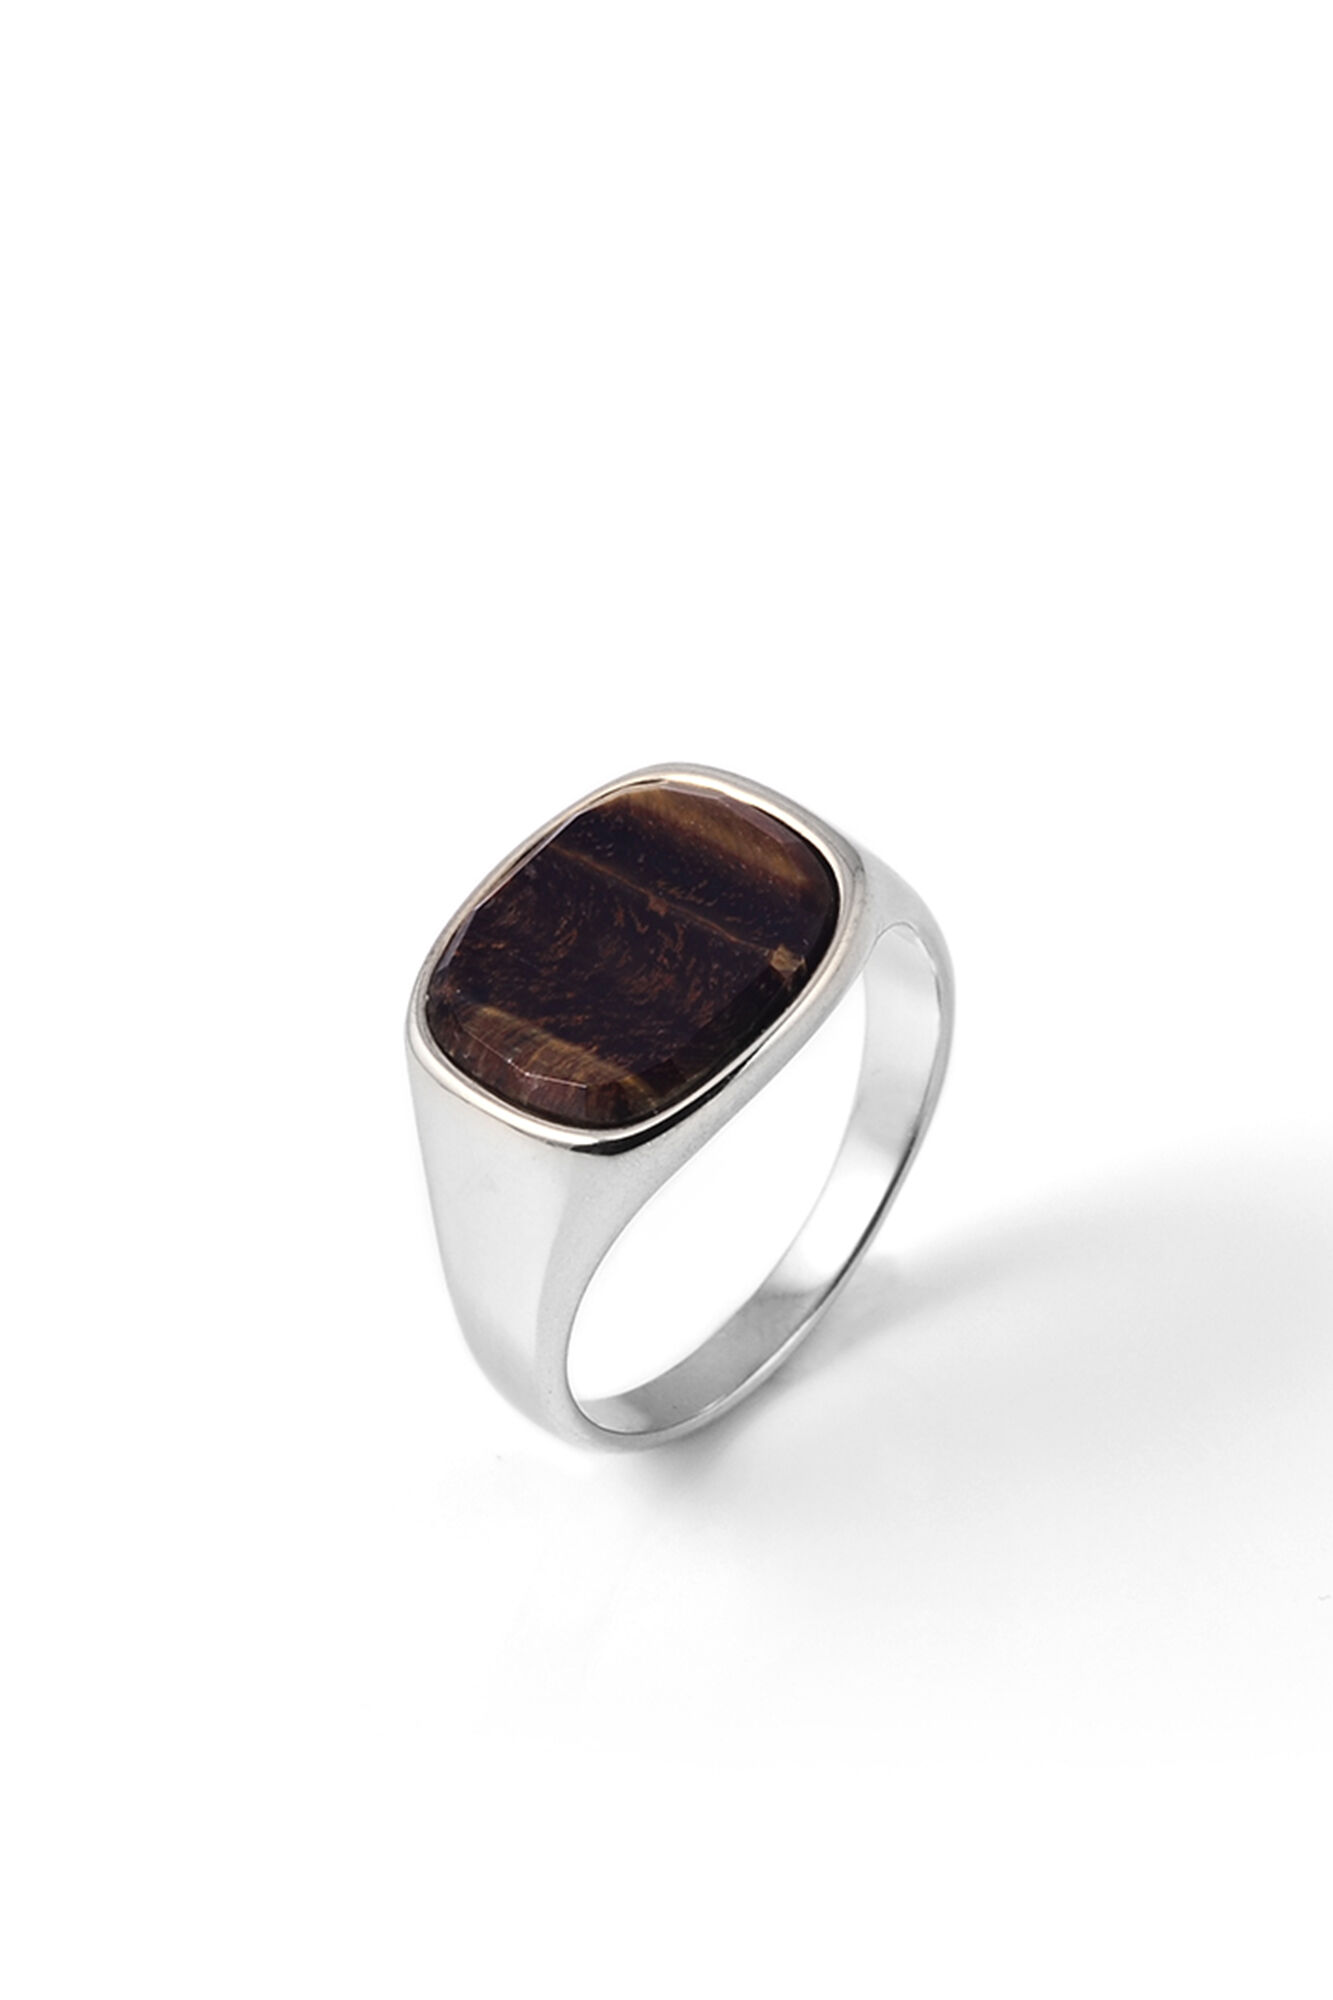 Himsel, SILVER - SQUARE TIGER EYE STON